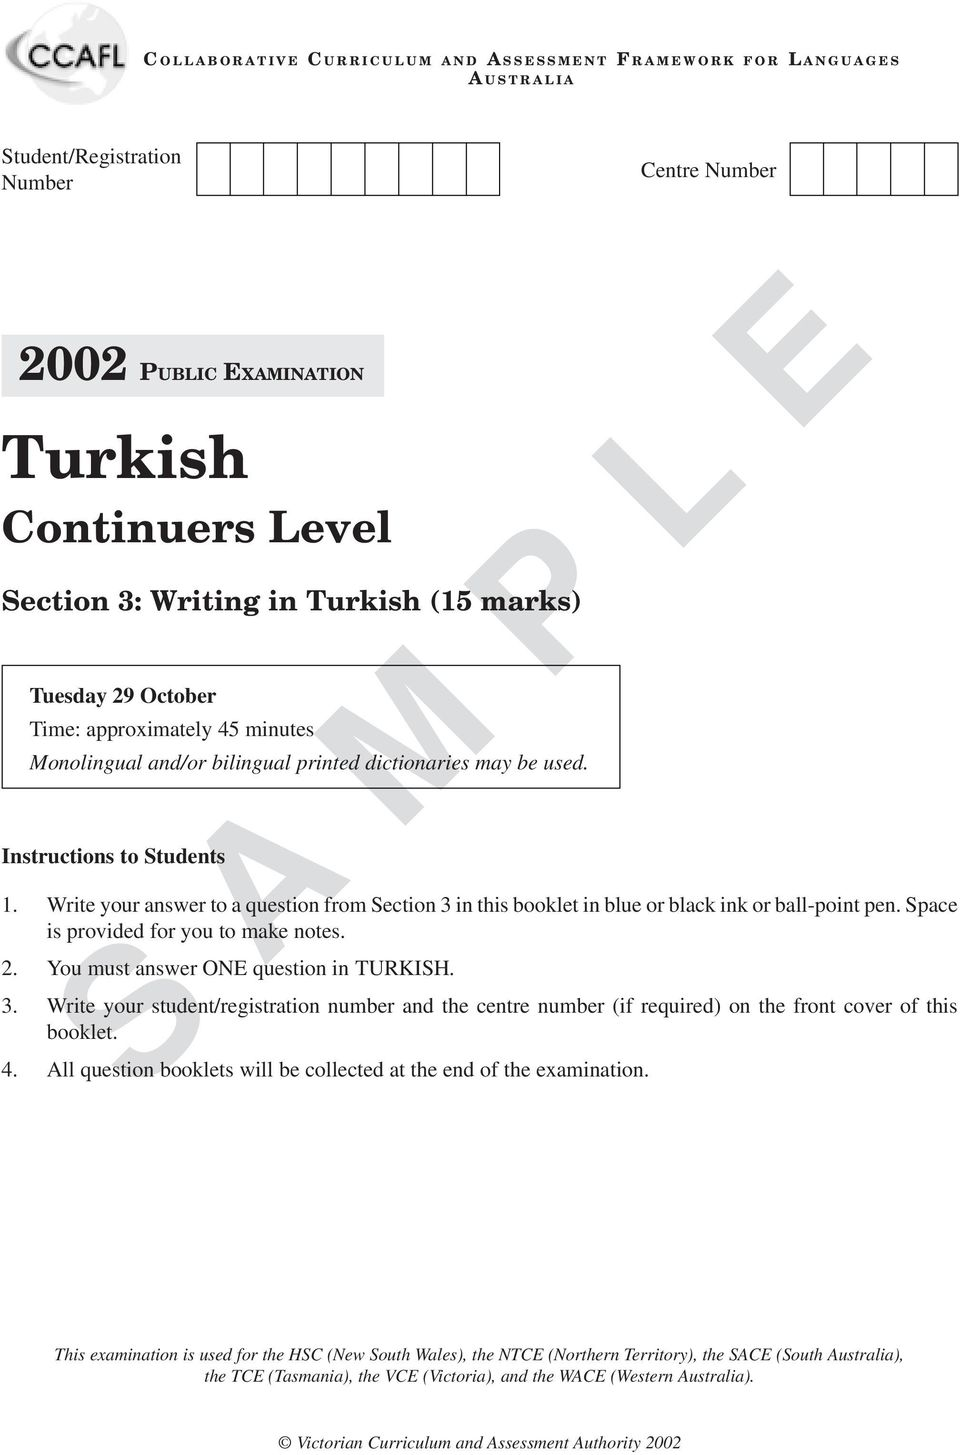 Write your answer to a question from Section 3 in this booklet in blue or black ink or ball-point pen. Space is provided for you to make notes. 2. You must answer ONE question in TURKISH. 3. Write your student/registration number and the centre number (if required) on the front cover of this booklet.